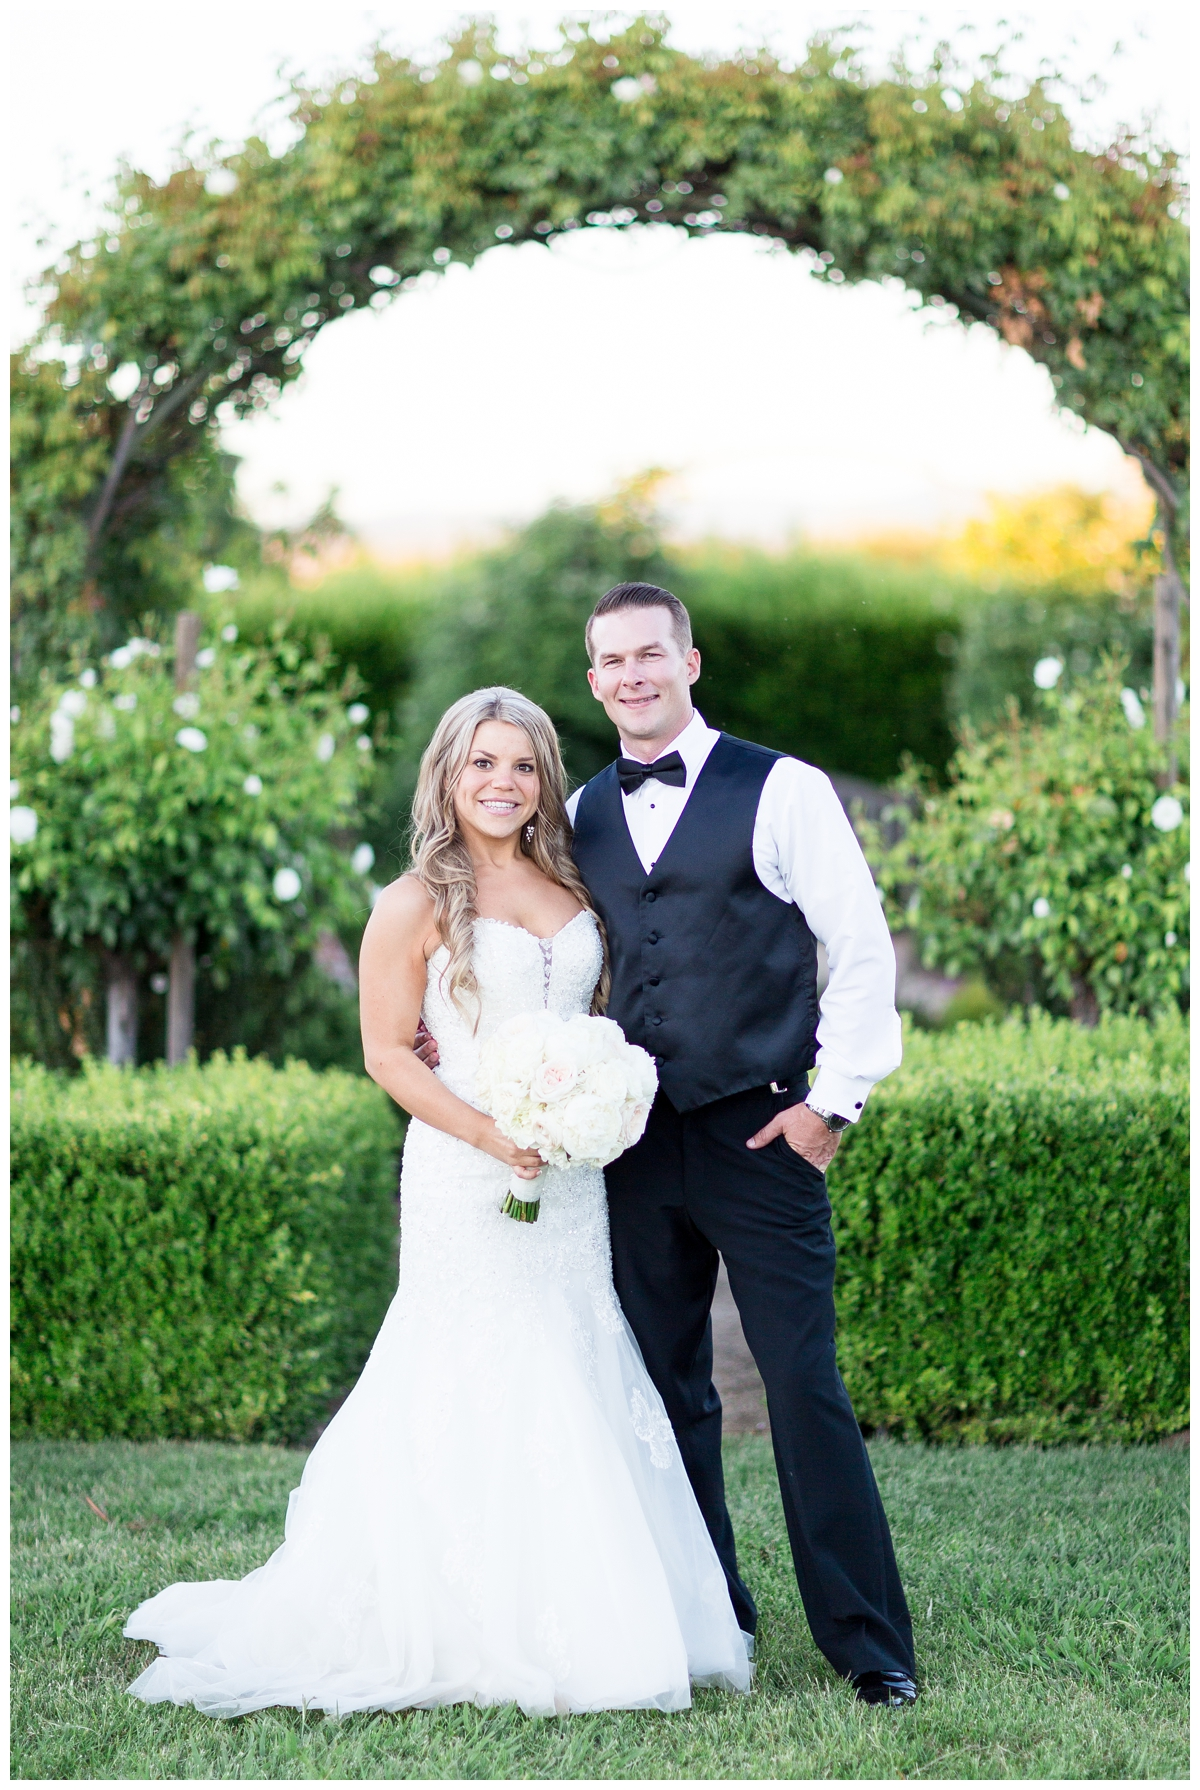 Skylake-Gardens-Chico-Wedding-Photography_0718.jpg